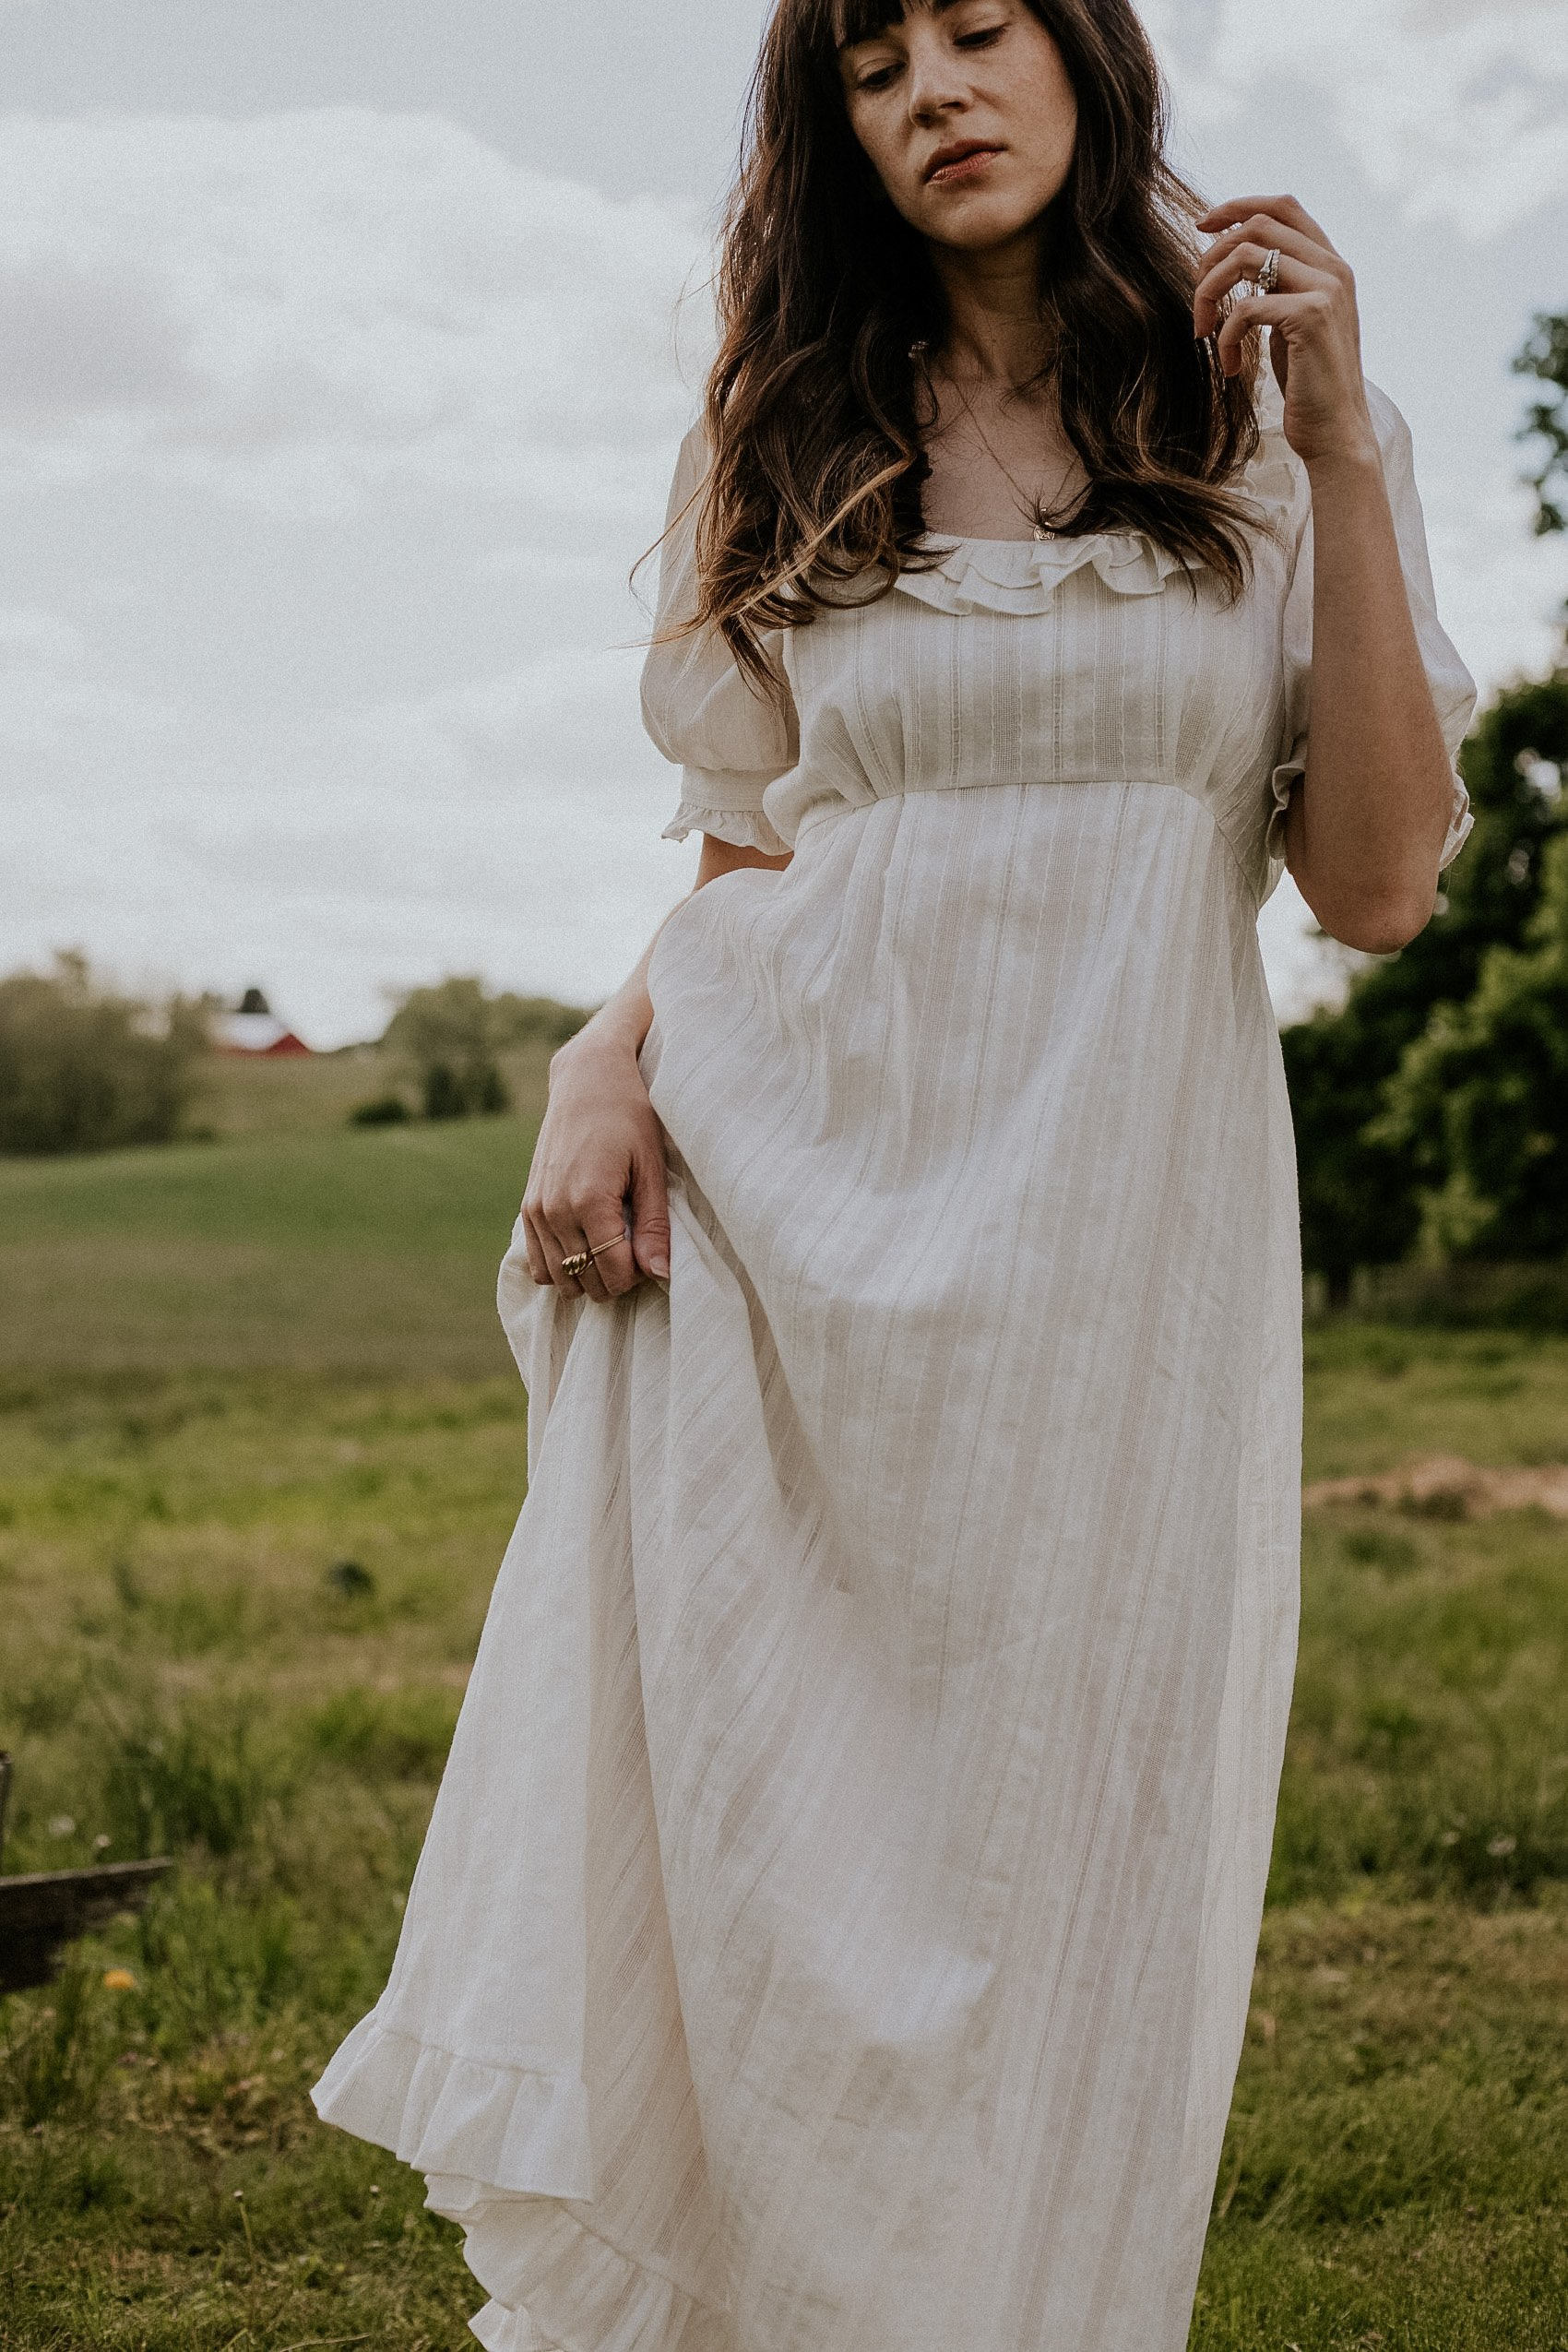 White Cottagecore Summer Dress from Christy Dawn on woman in field